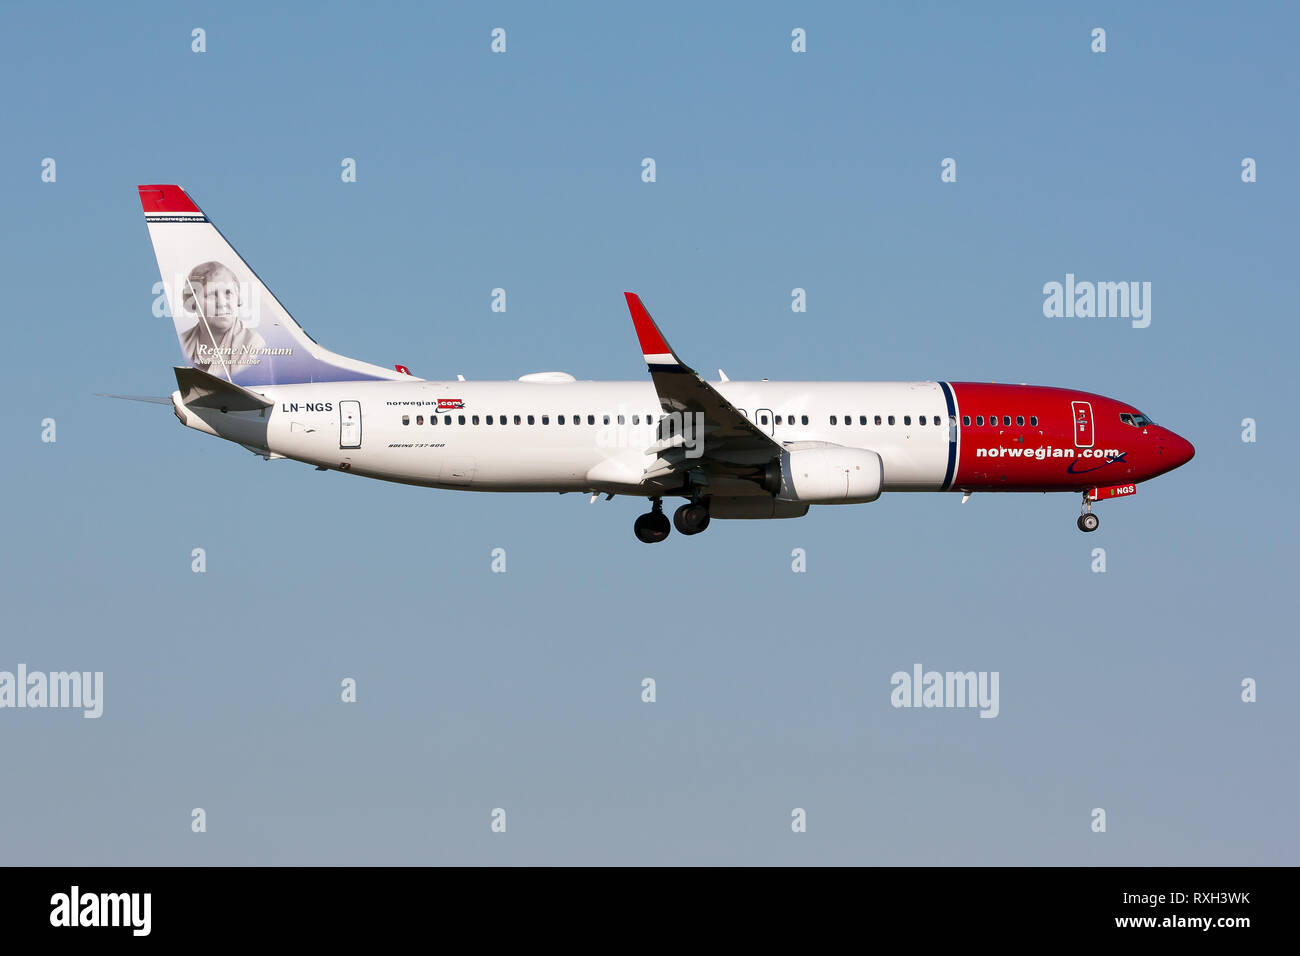 Rome, Italy. 6th July, 2014. A Norwegian Boeing 737-800 seen landing at Rome Fiumicino airport. Credit: Fabrizio Gandolfo/SOPA Images/ZUMA Wire/Alamy Live News - Stock Image